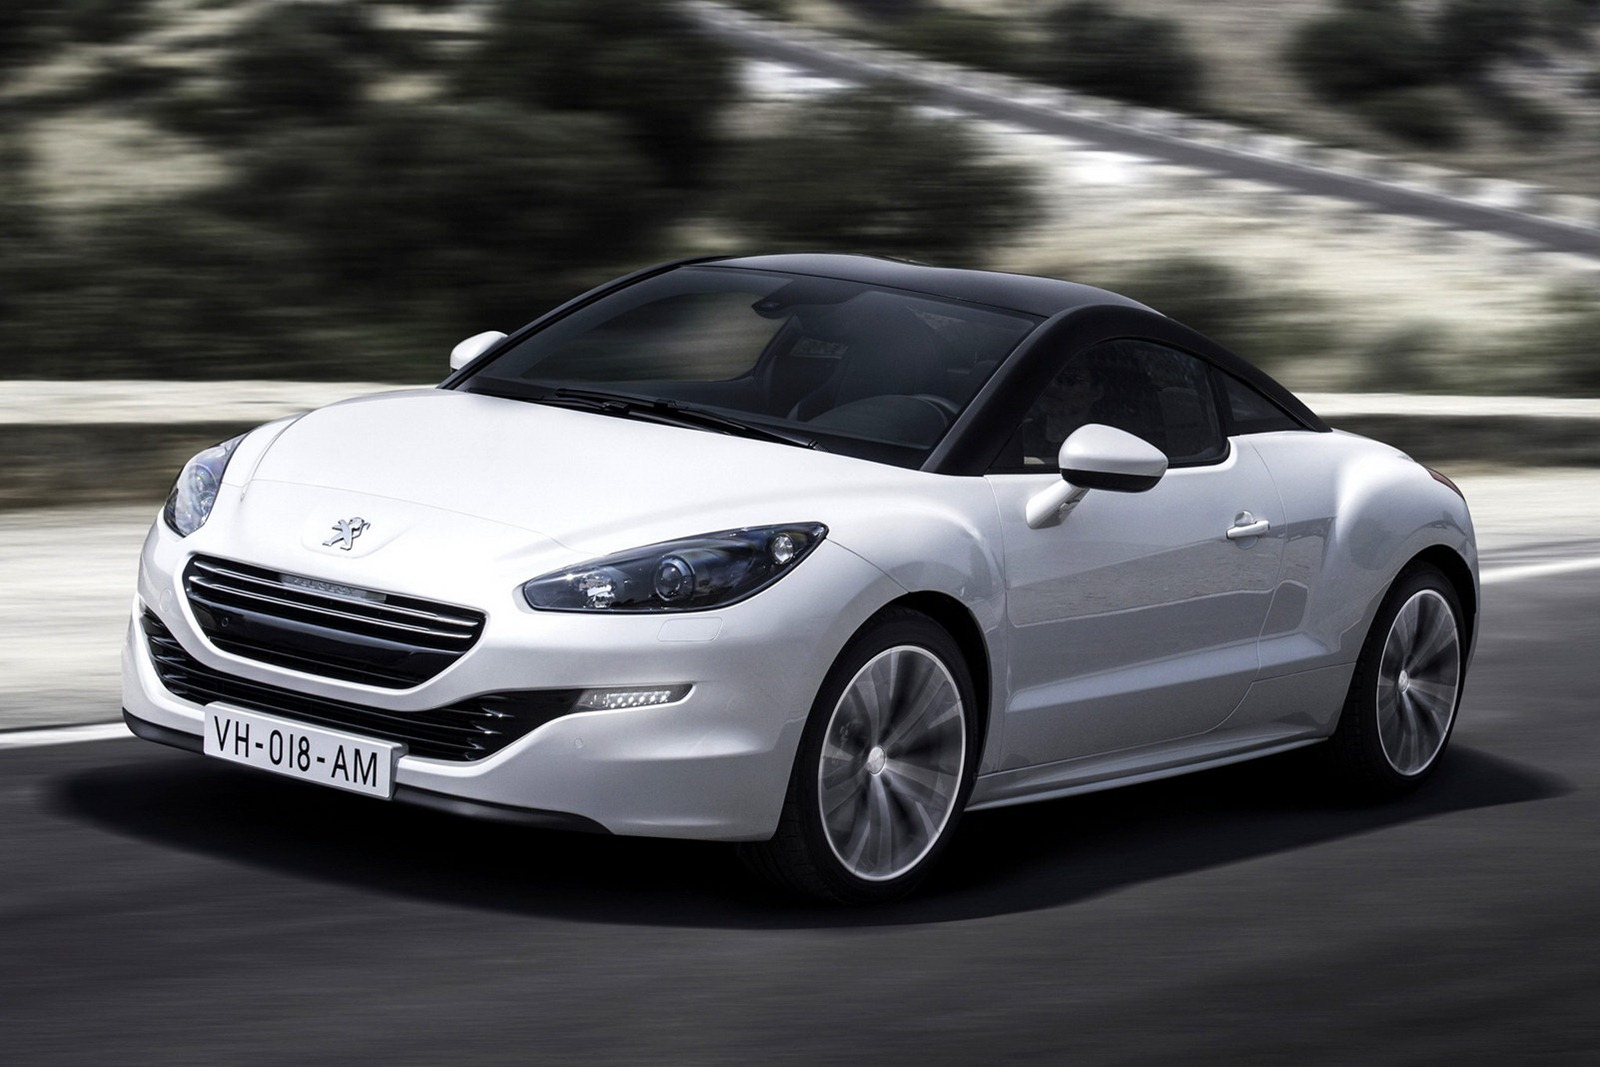 2013 peugeot rcz makyajland turkeycarblog. Black Bedroom Furniture Sets. Home Design Ideas